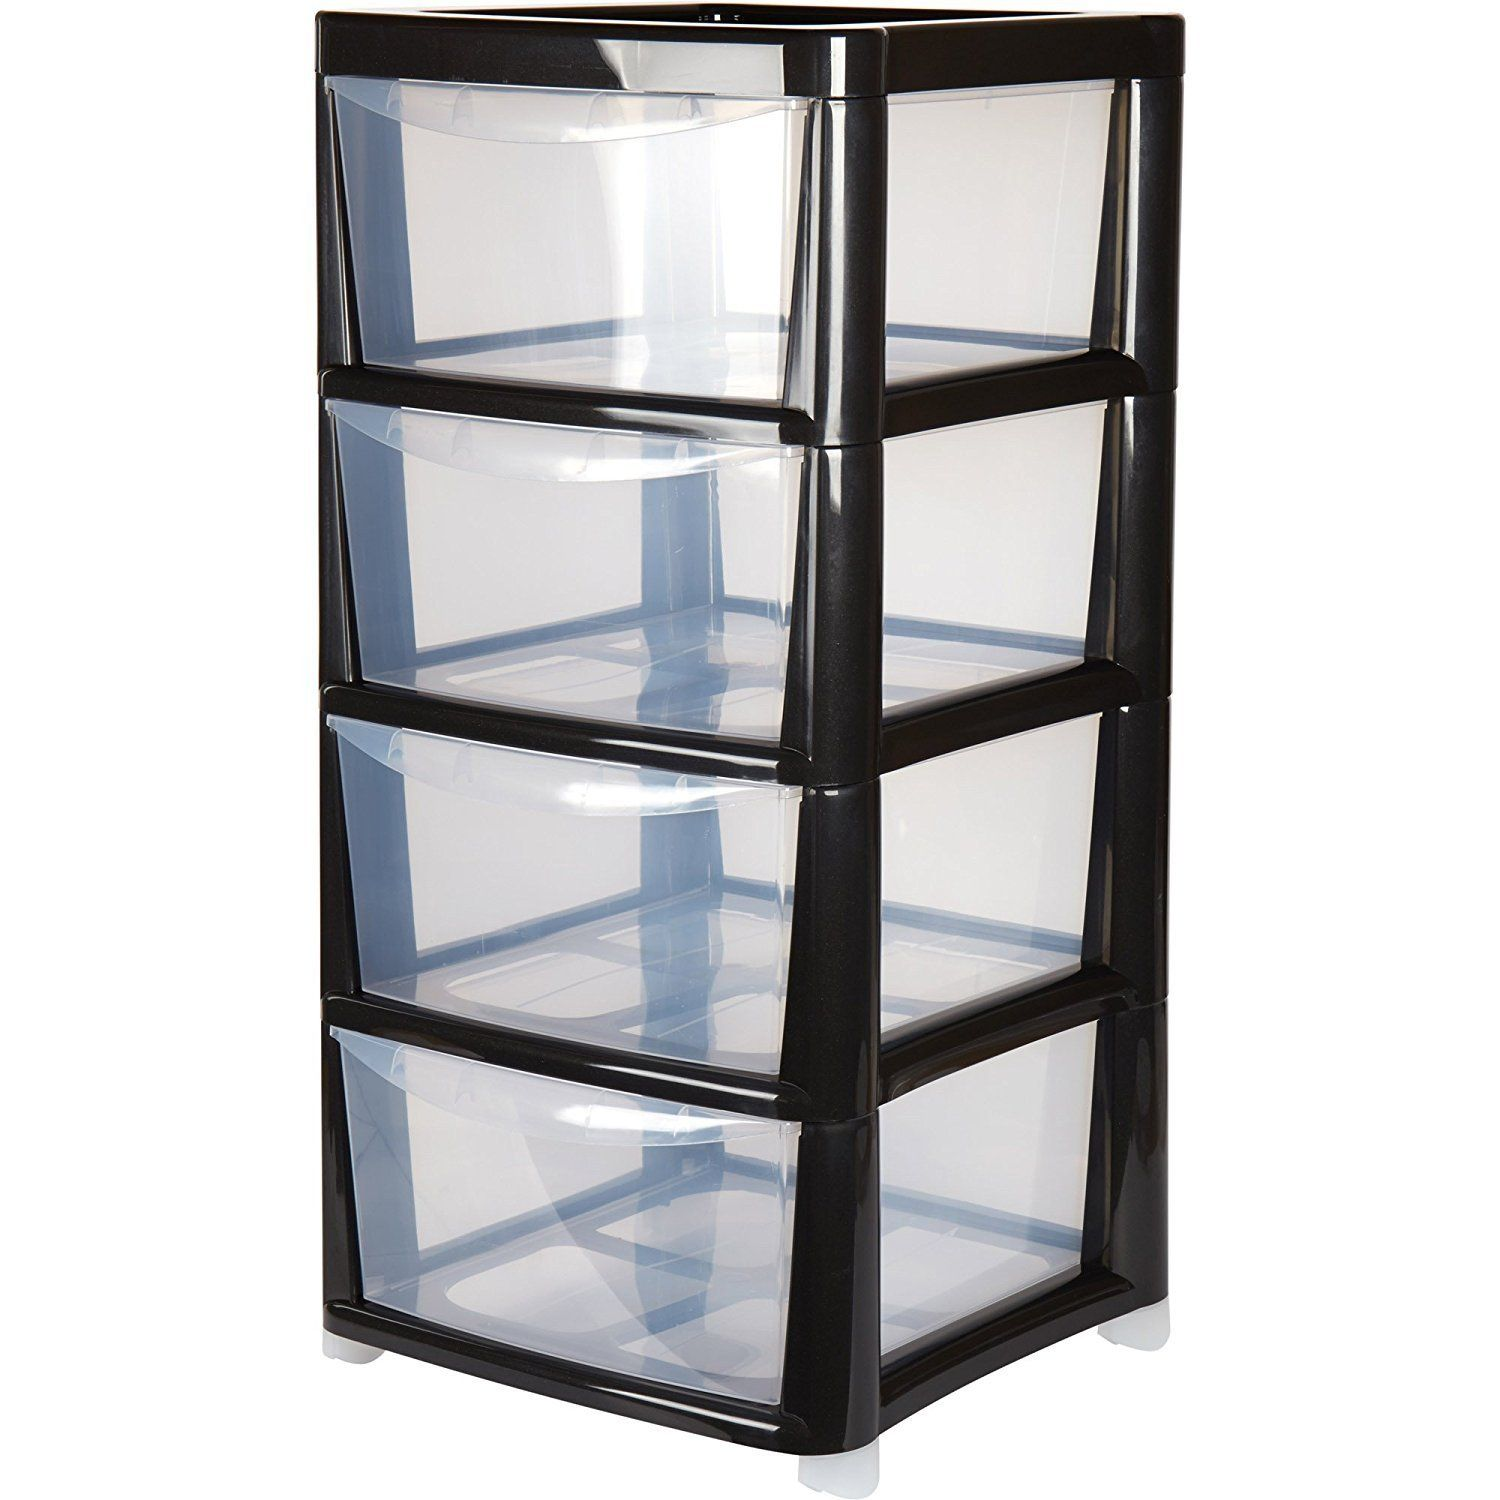 4 Drawer Large Plastic Storage Drawer Tower Black